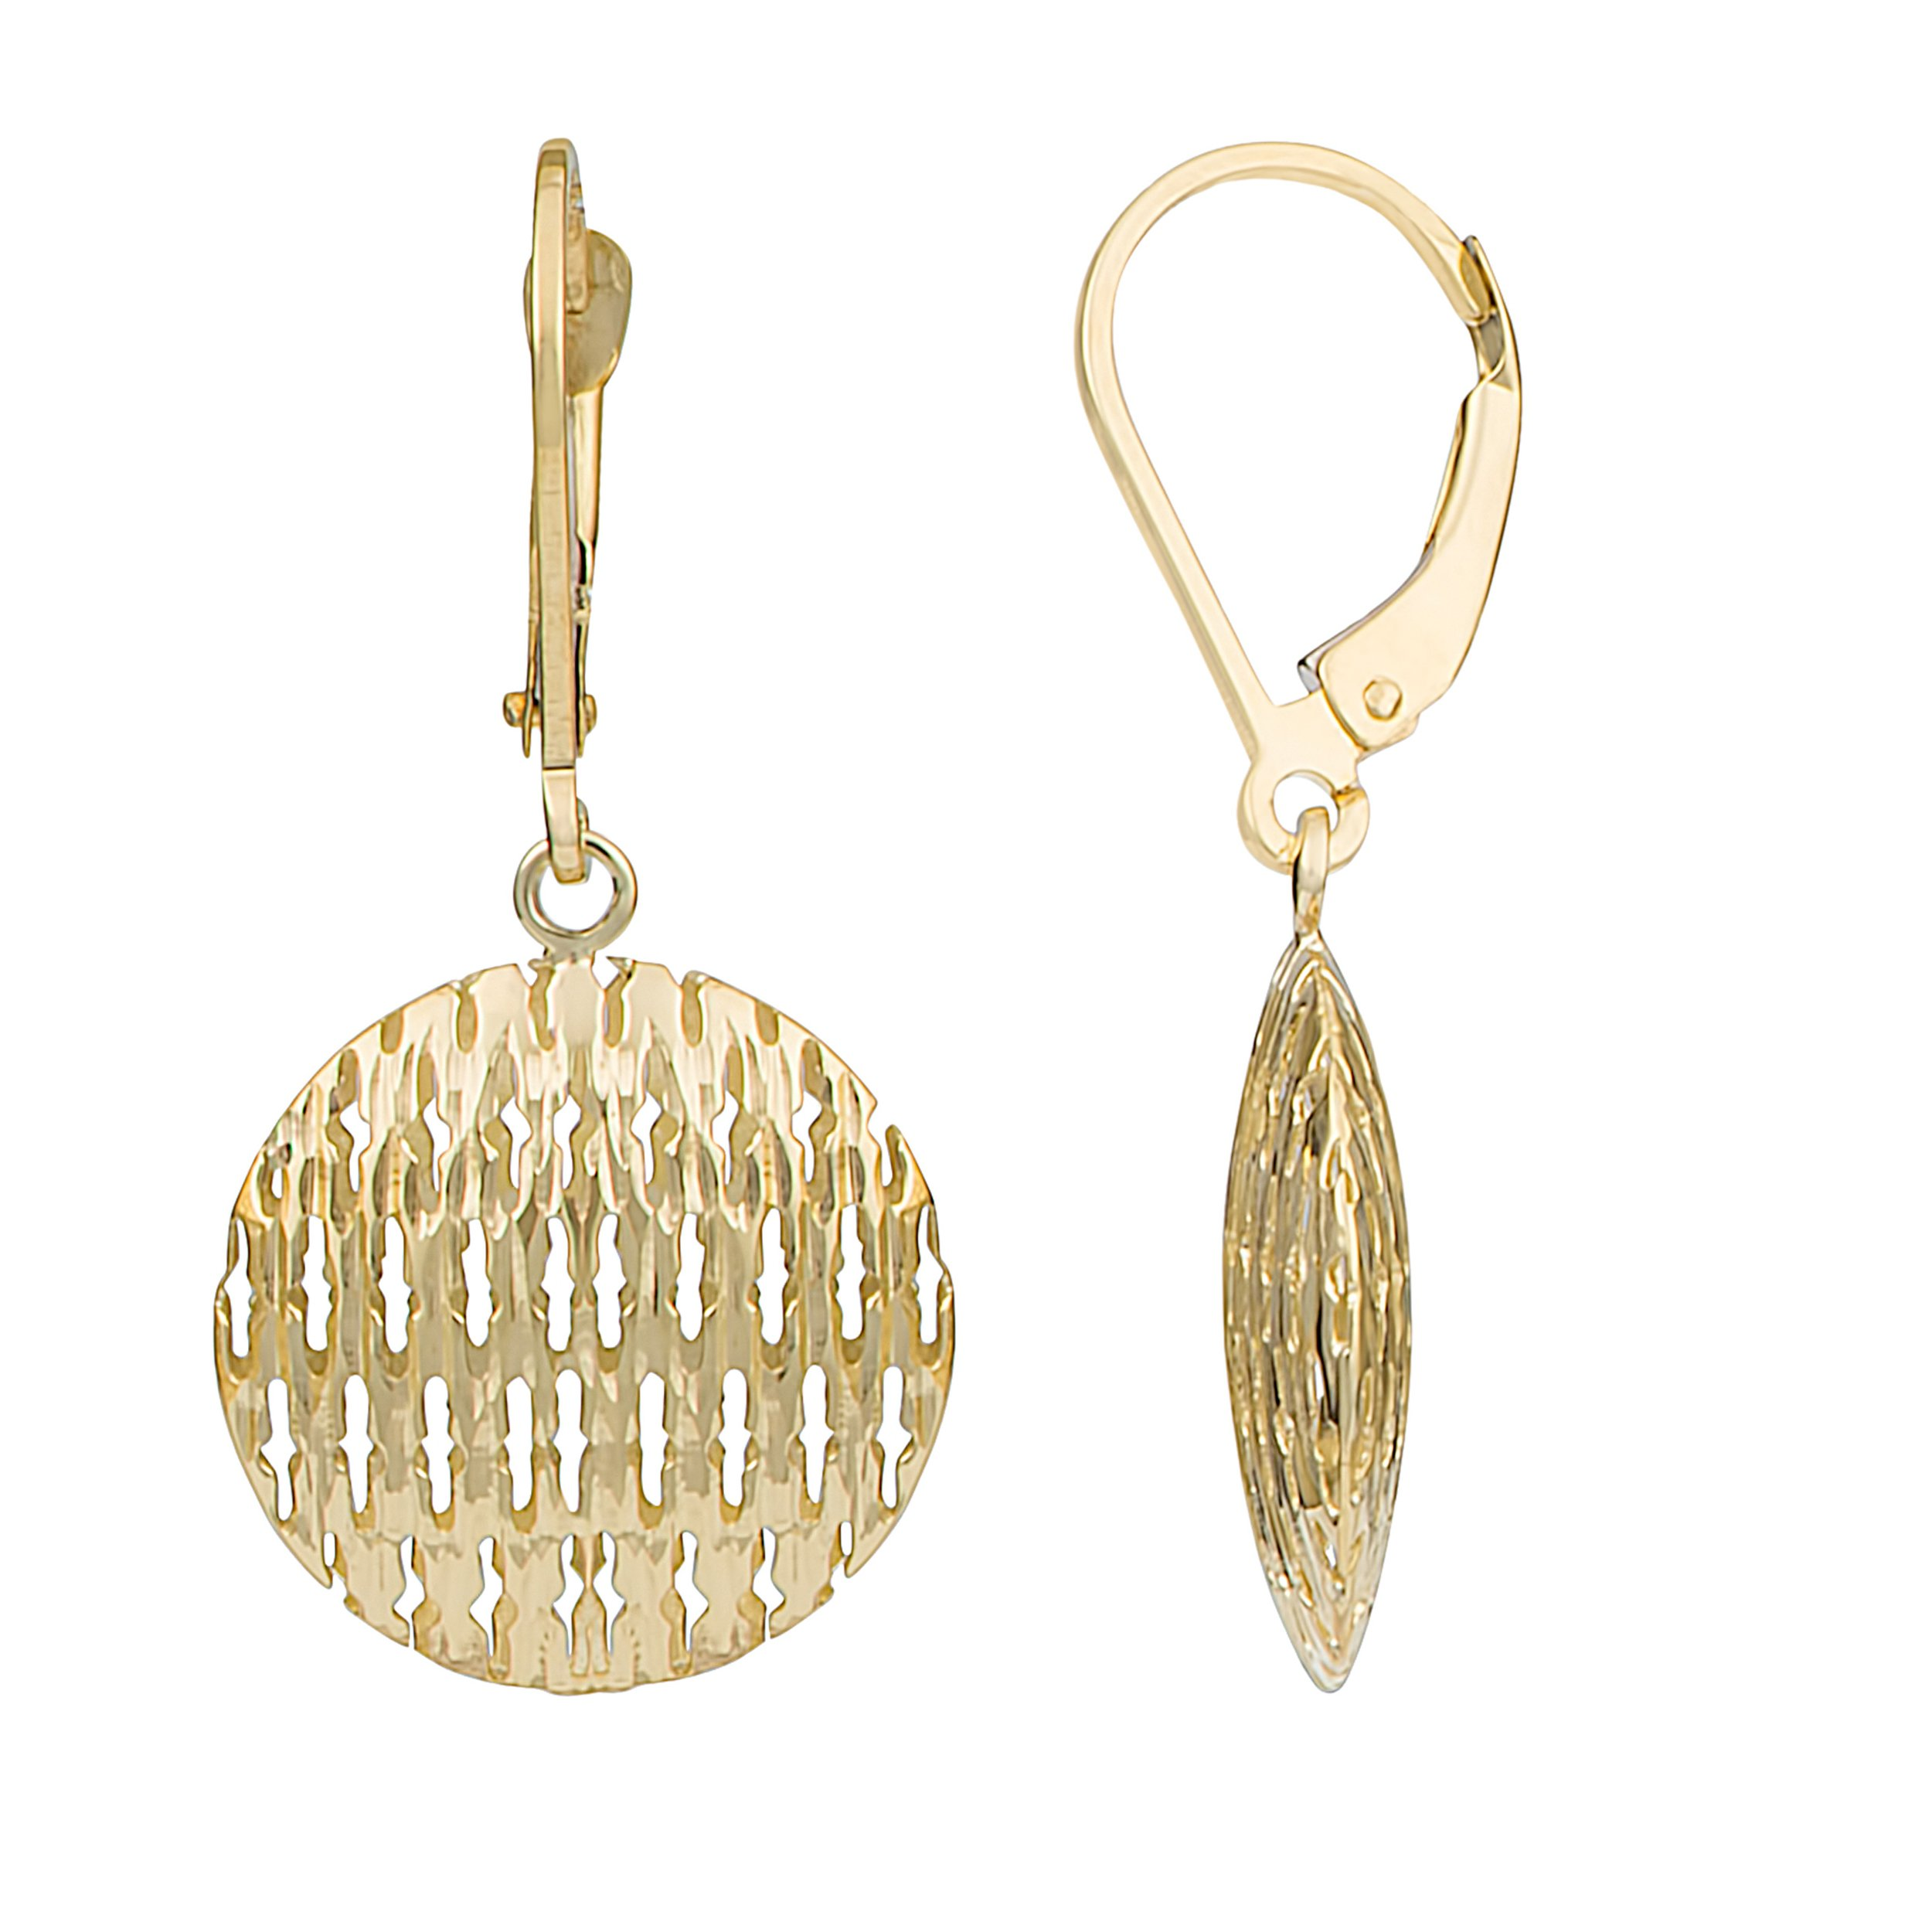 10k Yellow Gold Textured Puffy Round Disc Leverback Earrings